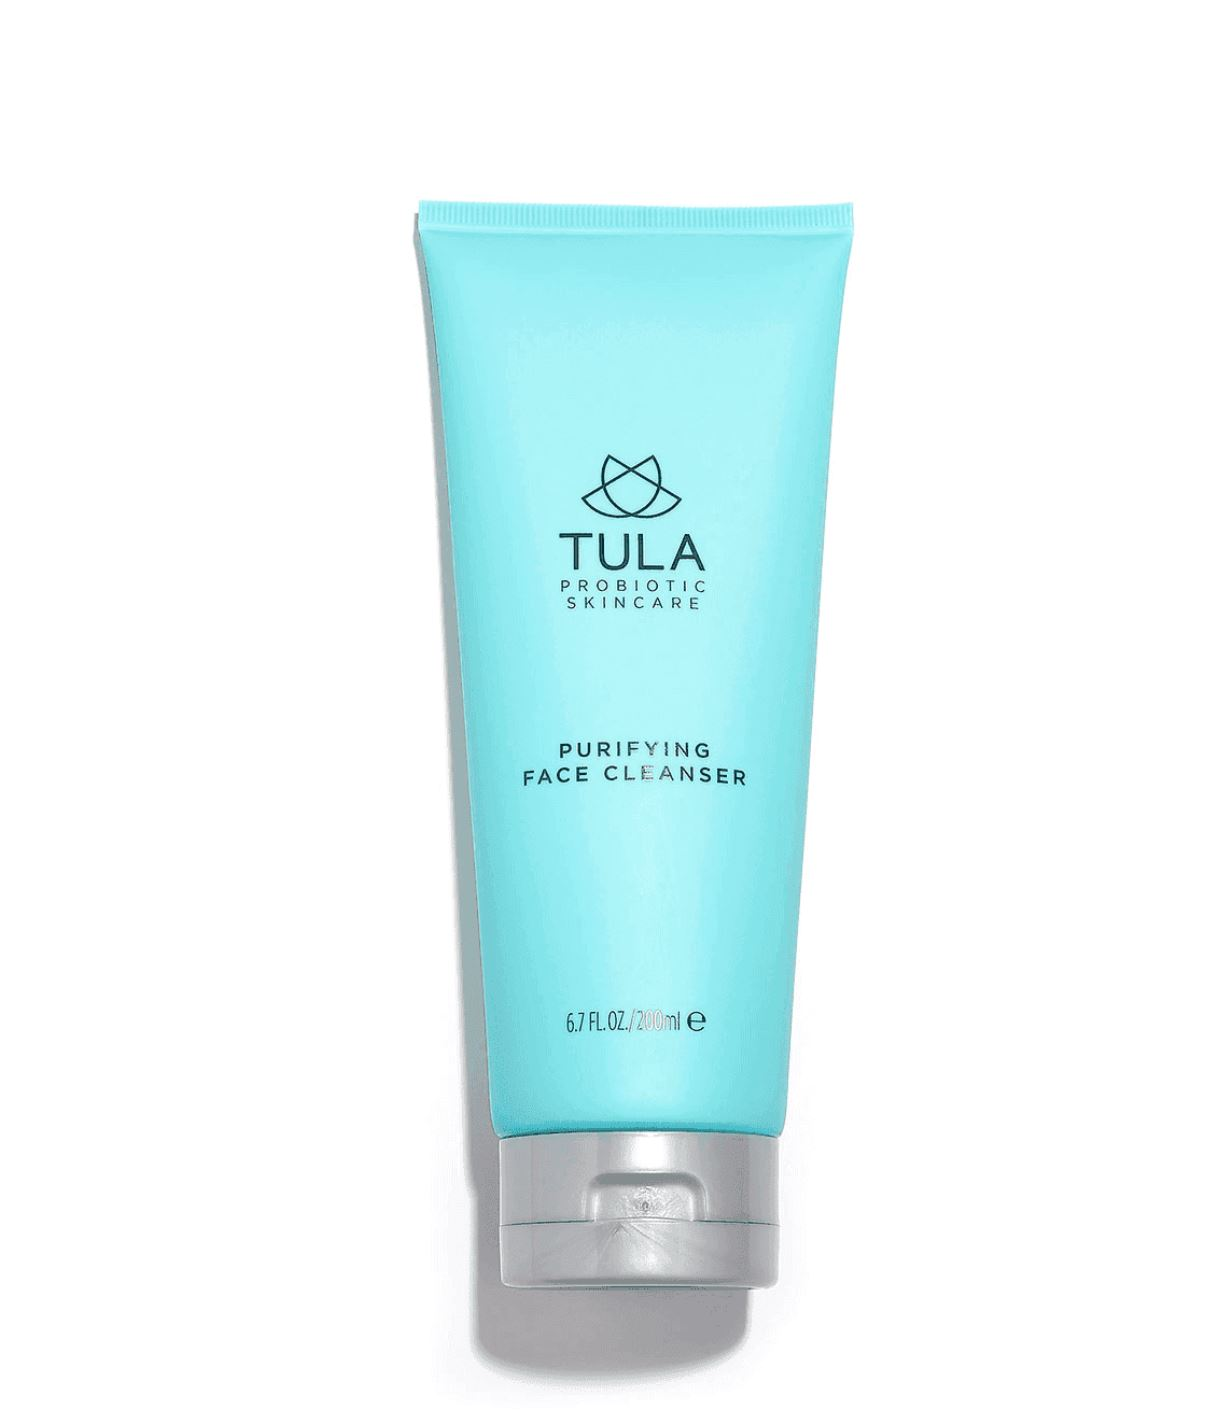 TULA: PURIFYING CLEANSER